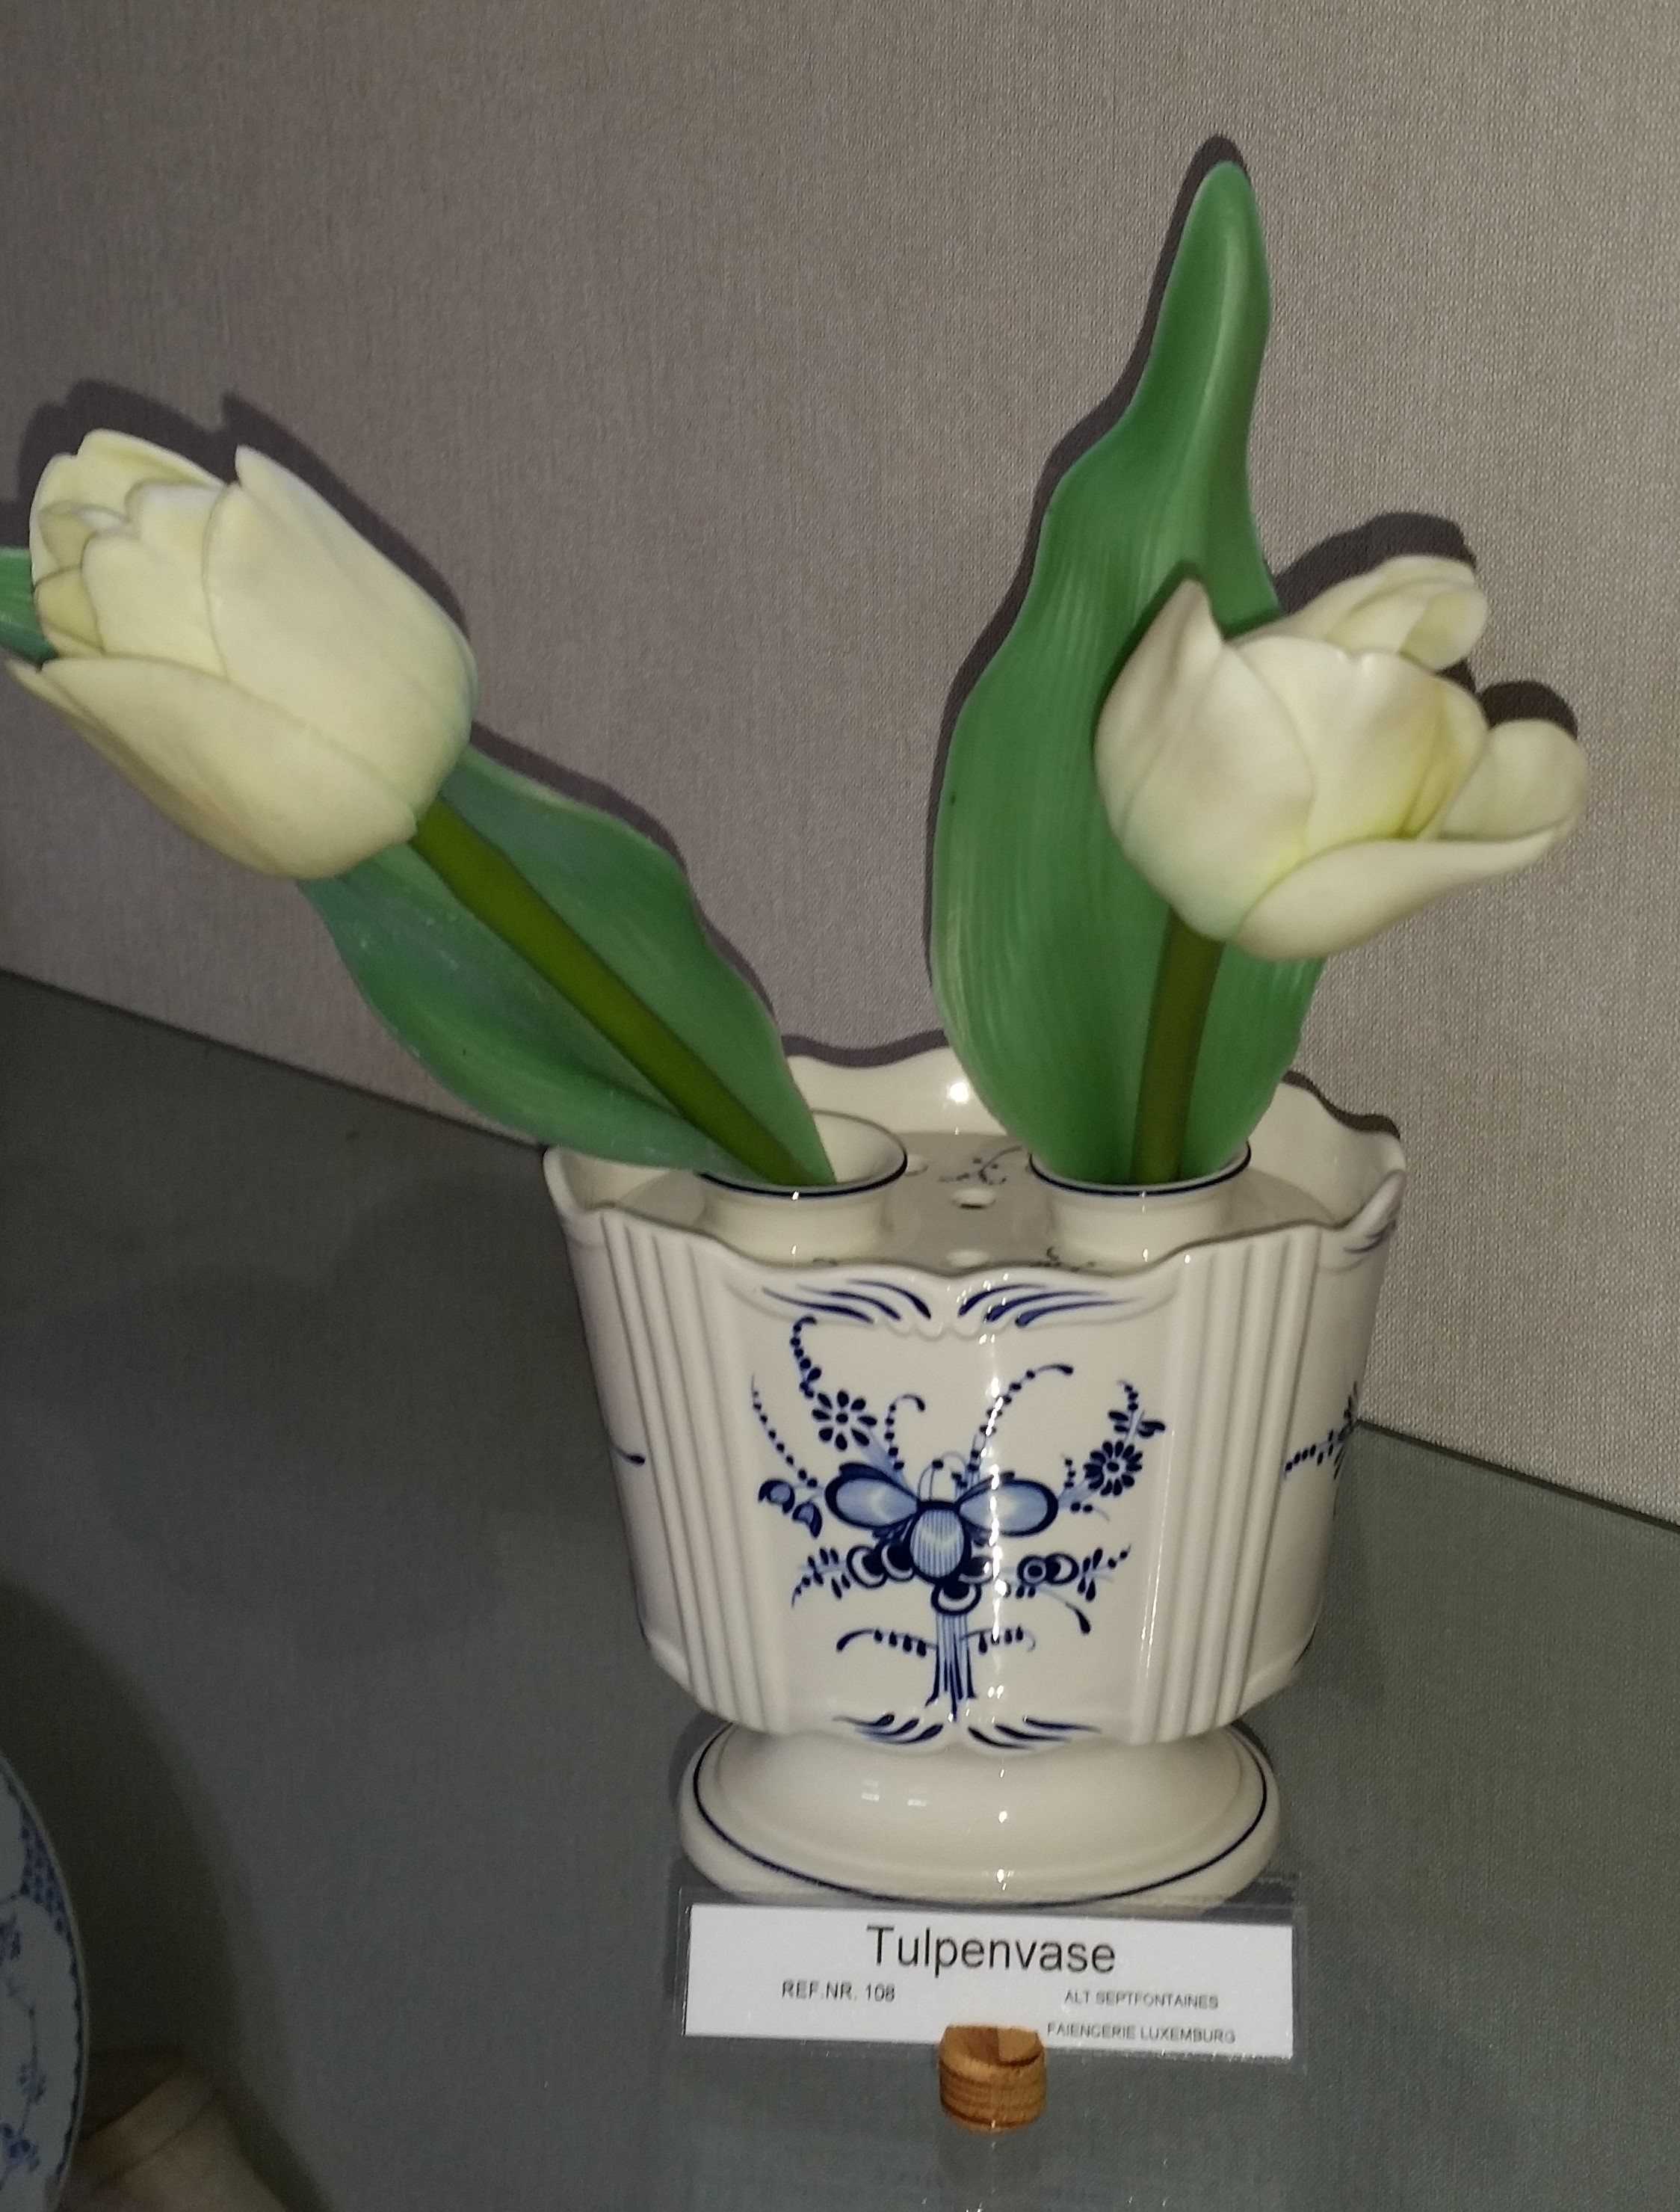 Tulpenvase, Villeroy&Boch (Museum der Stadt Bad Bergzabern CC BY-NC-SA)